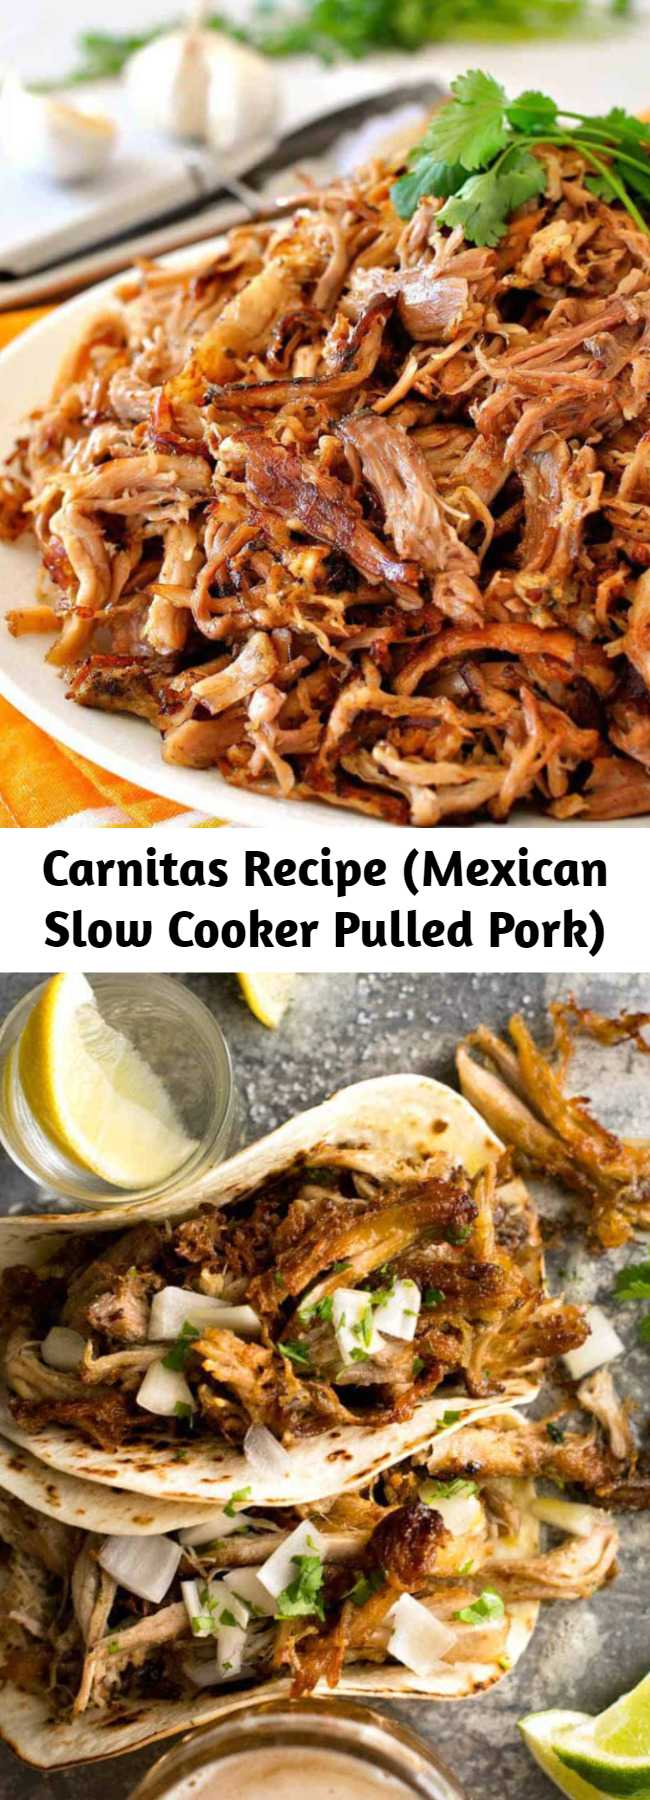 Carnitas Recipe (Mexican Slow Cooker Pulled Pork) - Super easy slow cooker Pork Carnitas (Mexican Pulled Pork) and the BEST way to get the brown bits! Every tortilla dreams of being stuffed with Carnitas. The best of the best of Mexican food, seasoned pork is slow cooked until tender before gently teasing apart with forks and pan frying to golden, crispy perfection. #crockpot